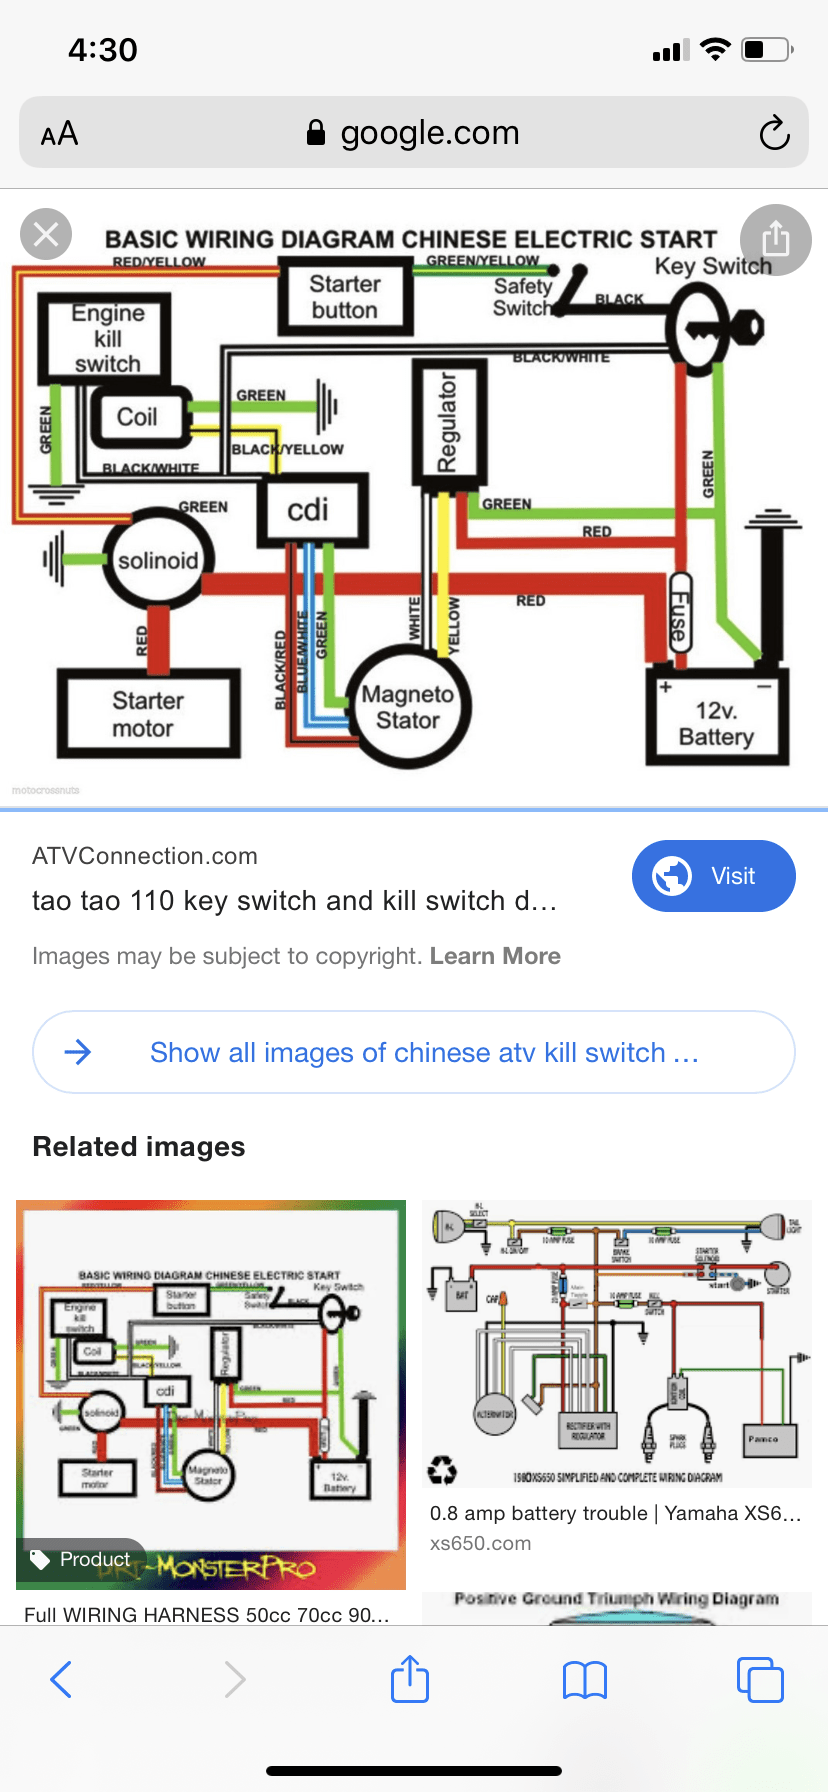 Chinese Atv Wiring Diagram : chinese, wiring, diagram, Where?, ATVConnection.com, Enthusiast, Community